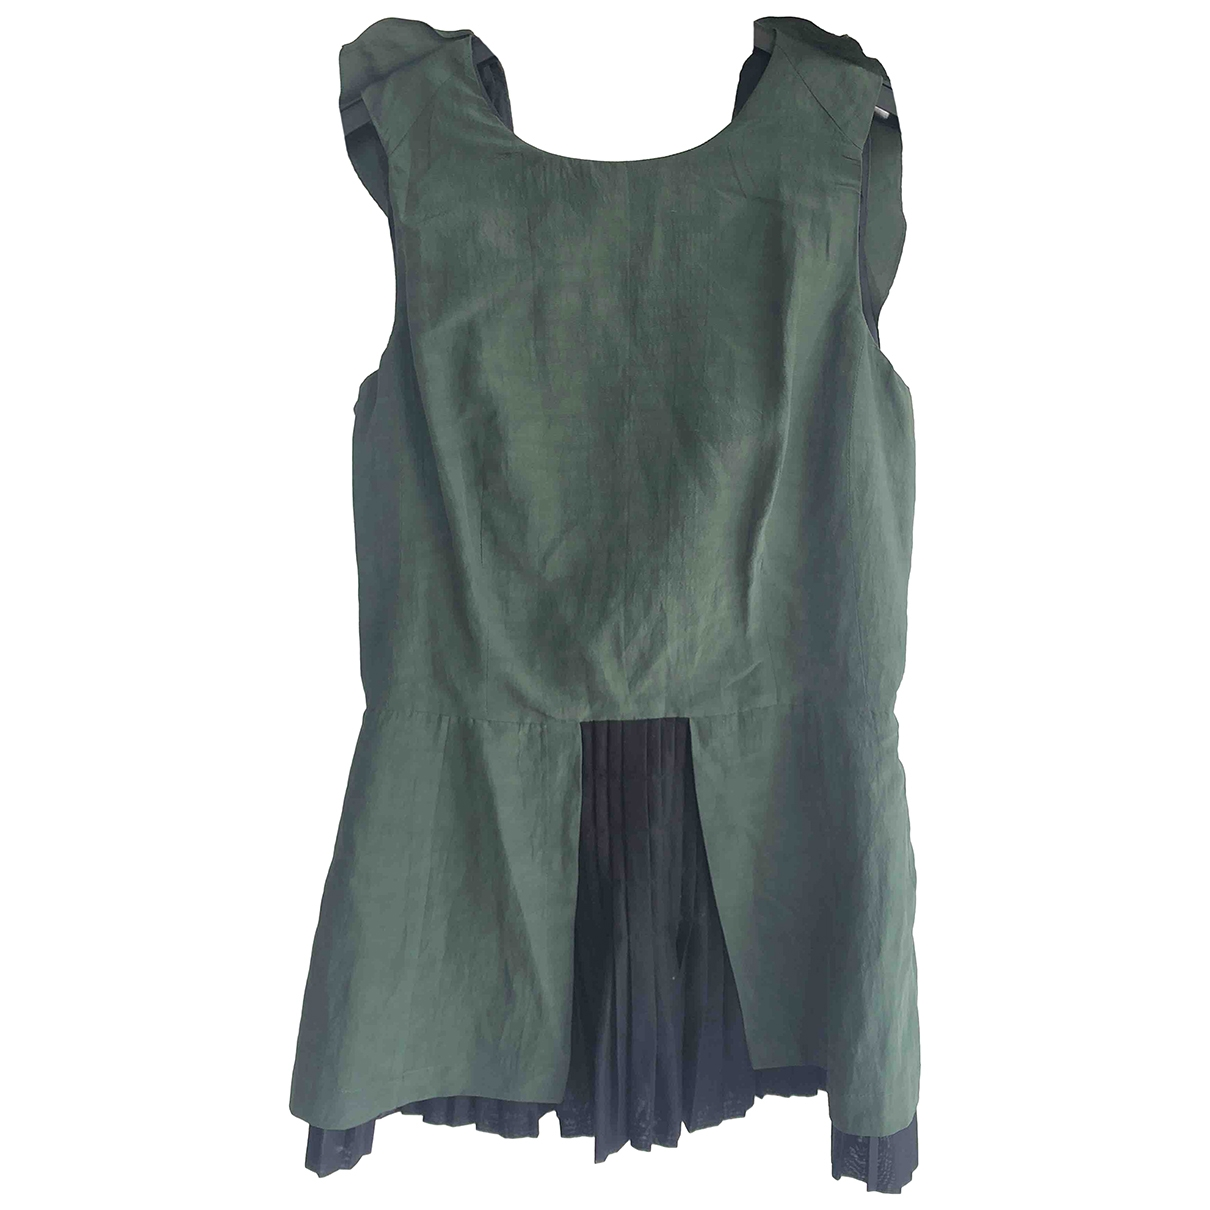 Marni \N Green Cotton  top for Women 40 IT